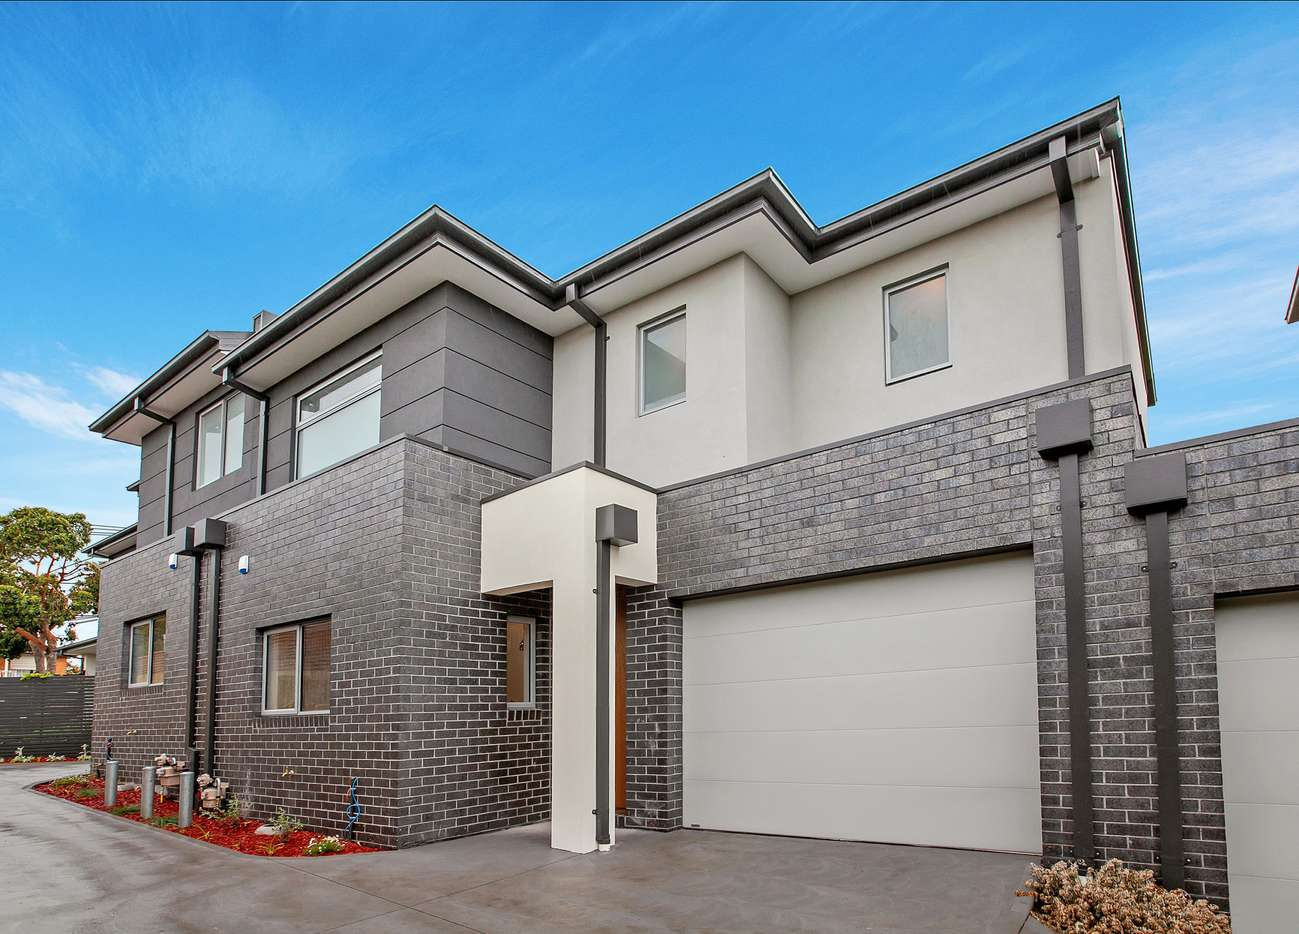 Main view of Homely townhouse listing, 3/35 Hickford Street, Reservoir, VIC 3073